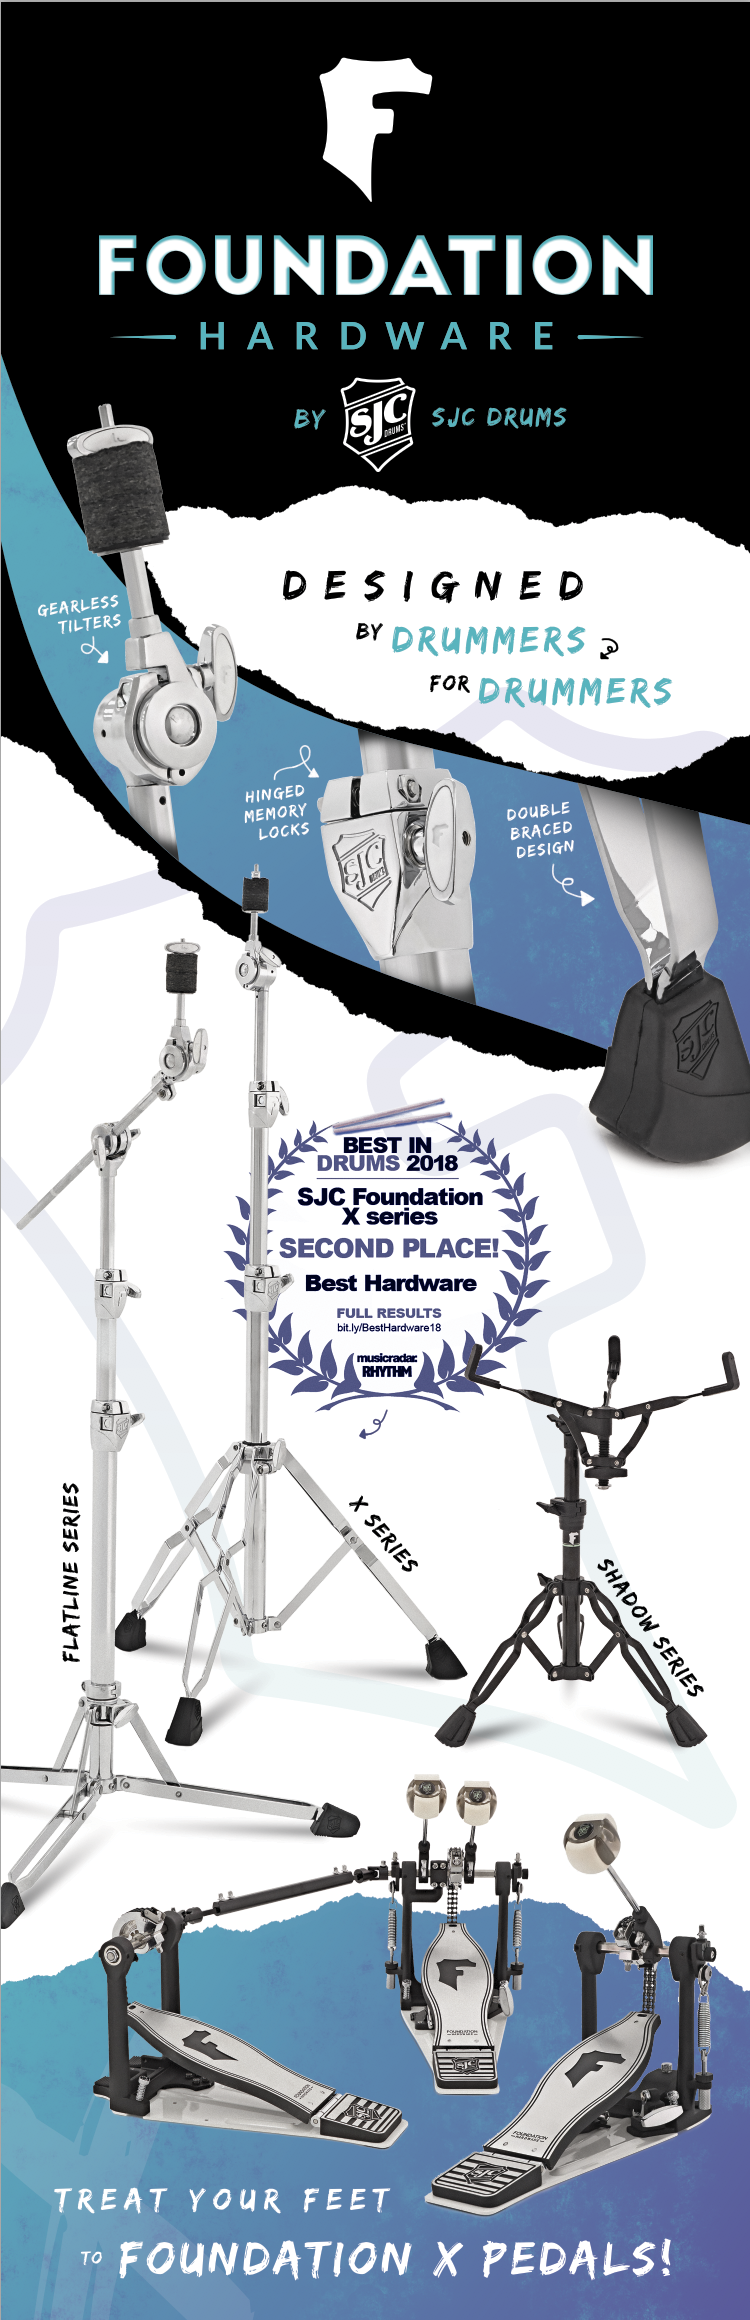 drum hardware, cymbal stands, snare stands